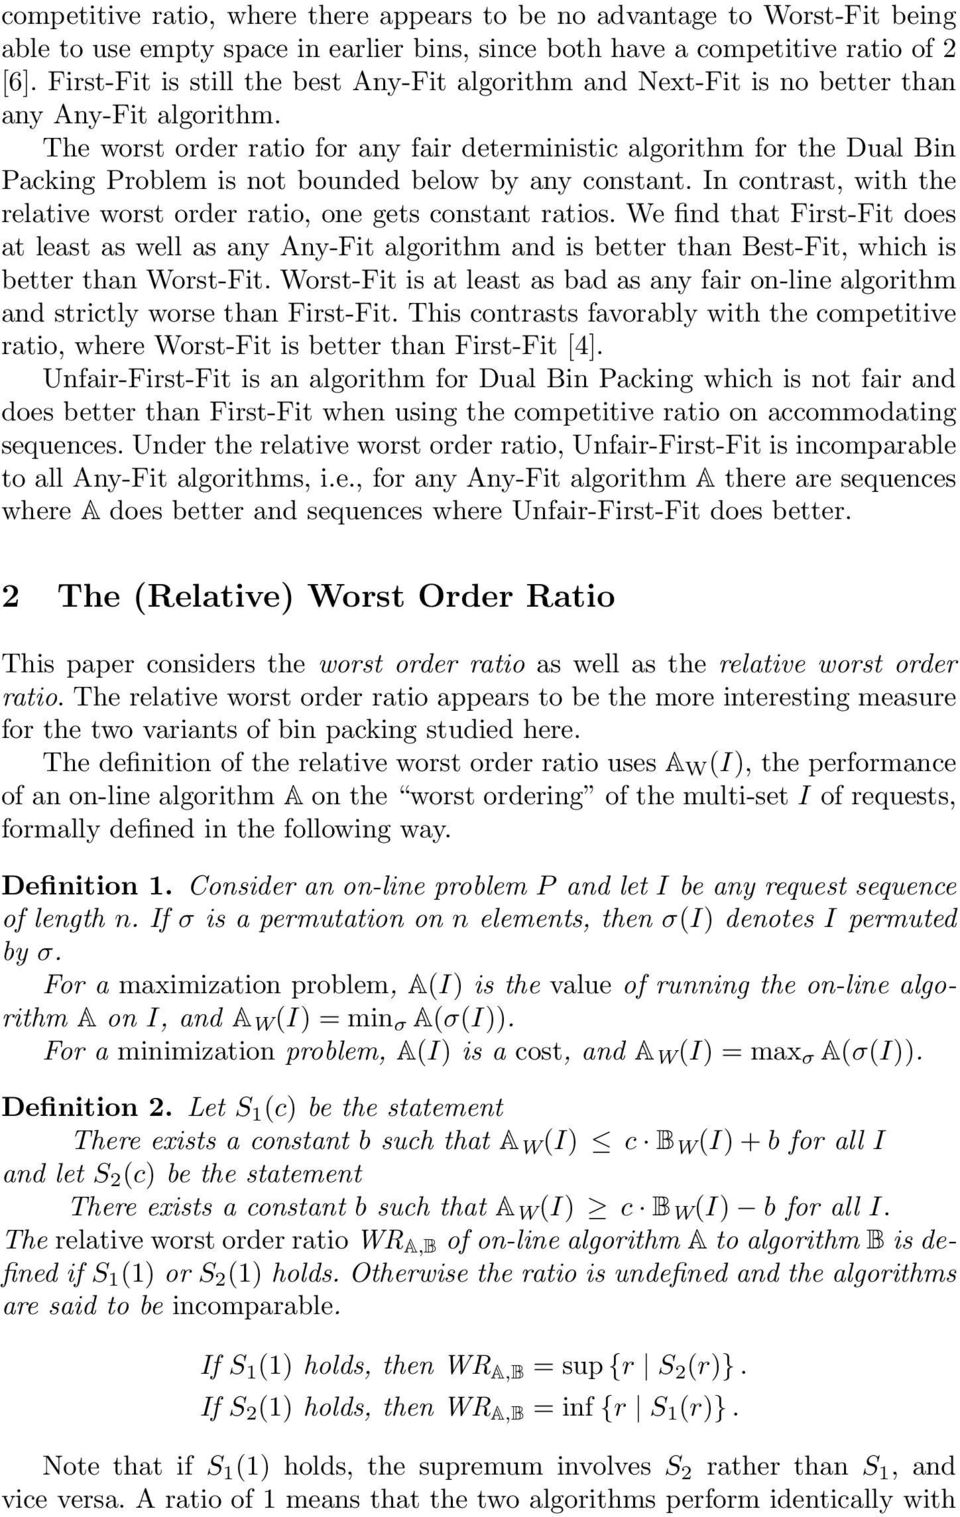 The worst order ratio for any fair deterministic algorithm for the Dual Bin Packing Problem is not bounded below by any constant.